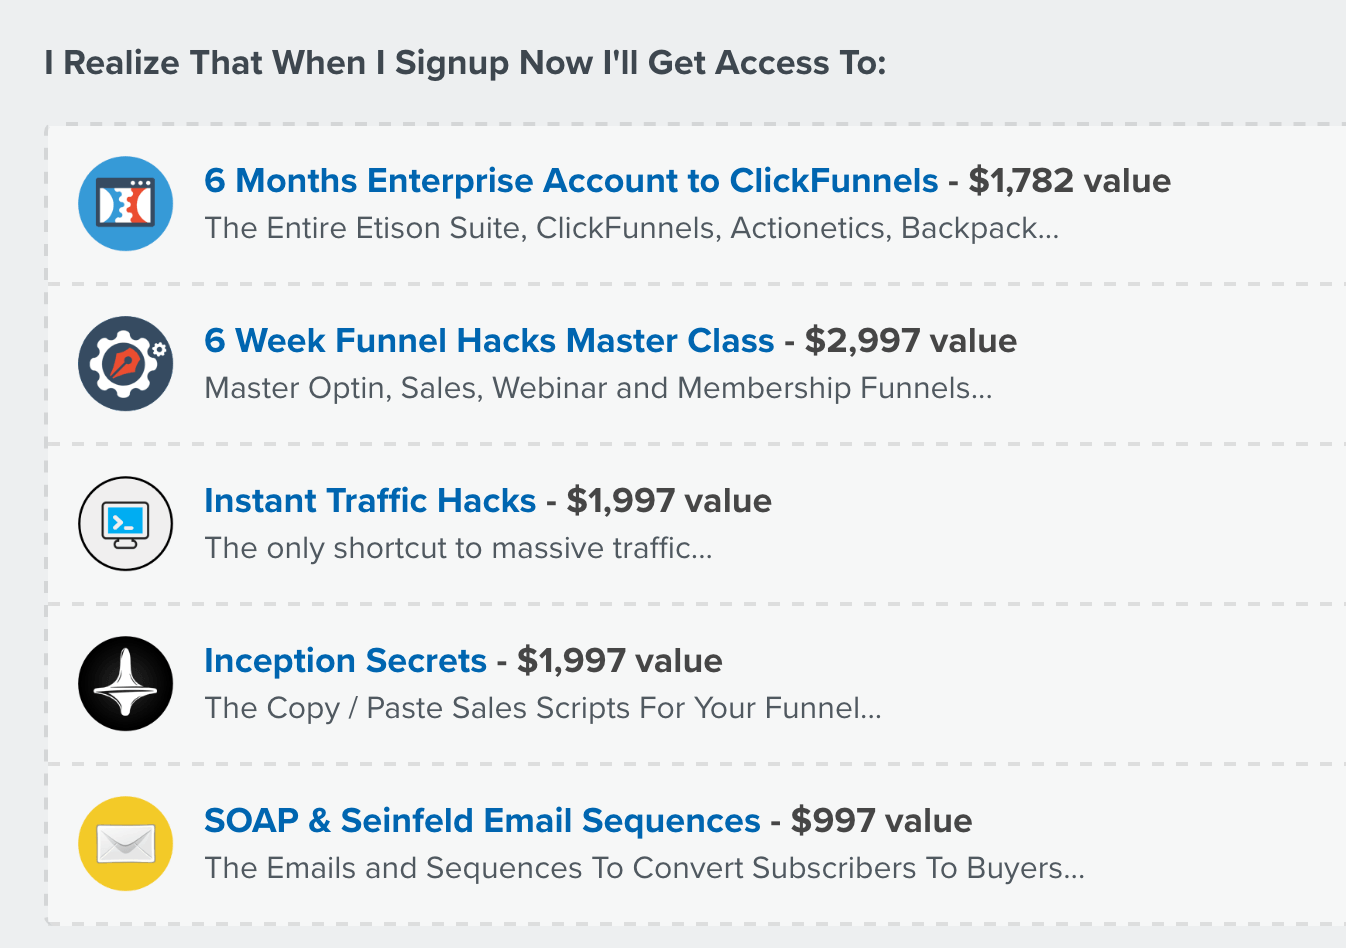 Clickfunnels Enterprise Account